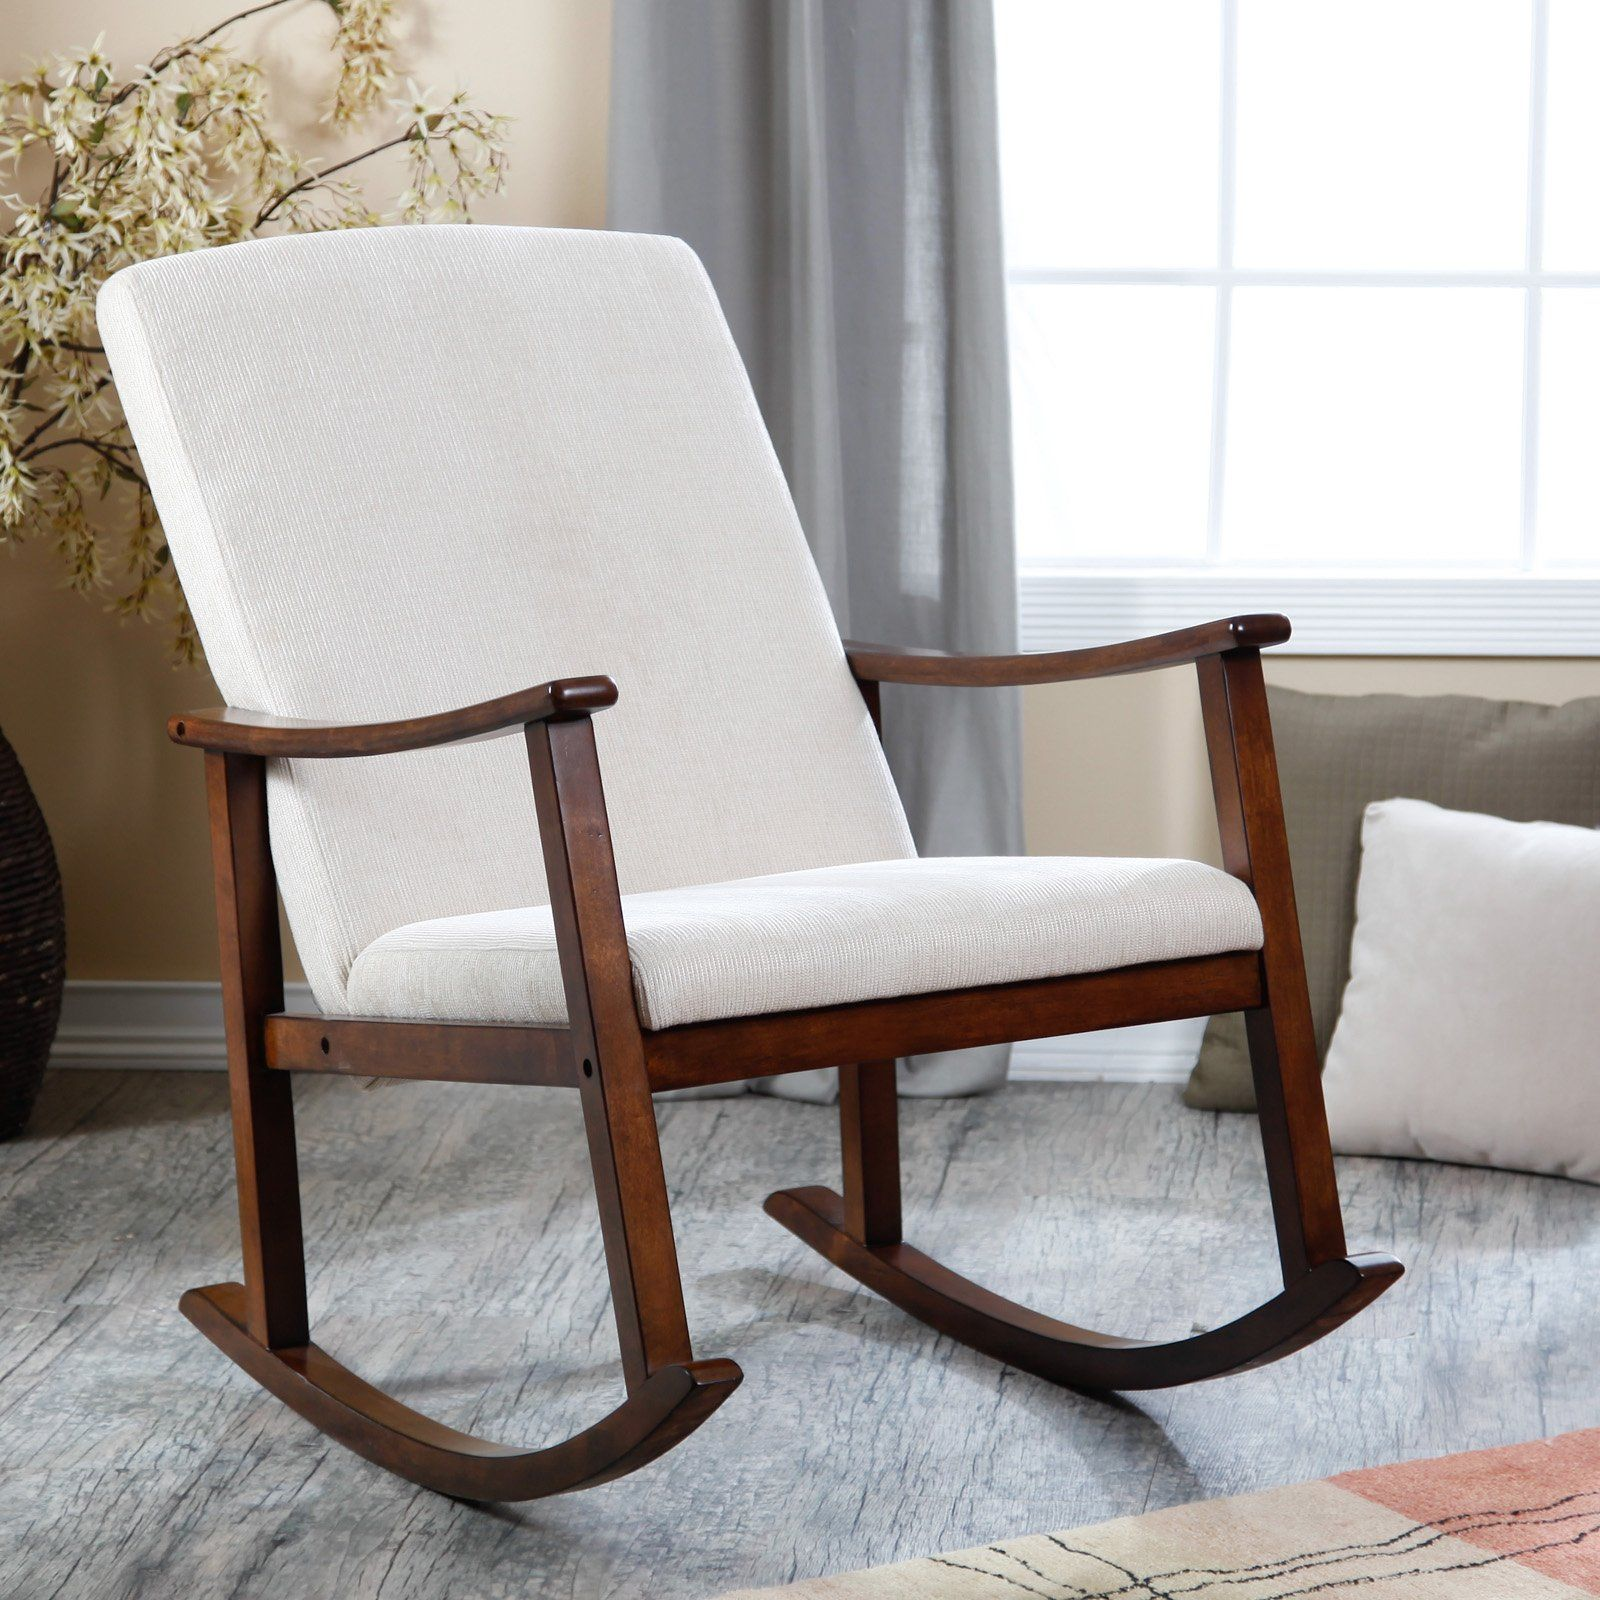 Rocky Chair Upholstered Rocking Chairs On Pinterest